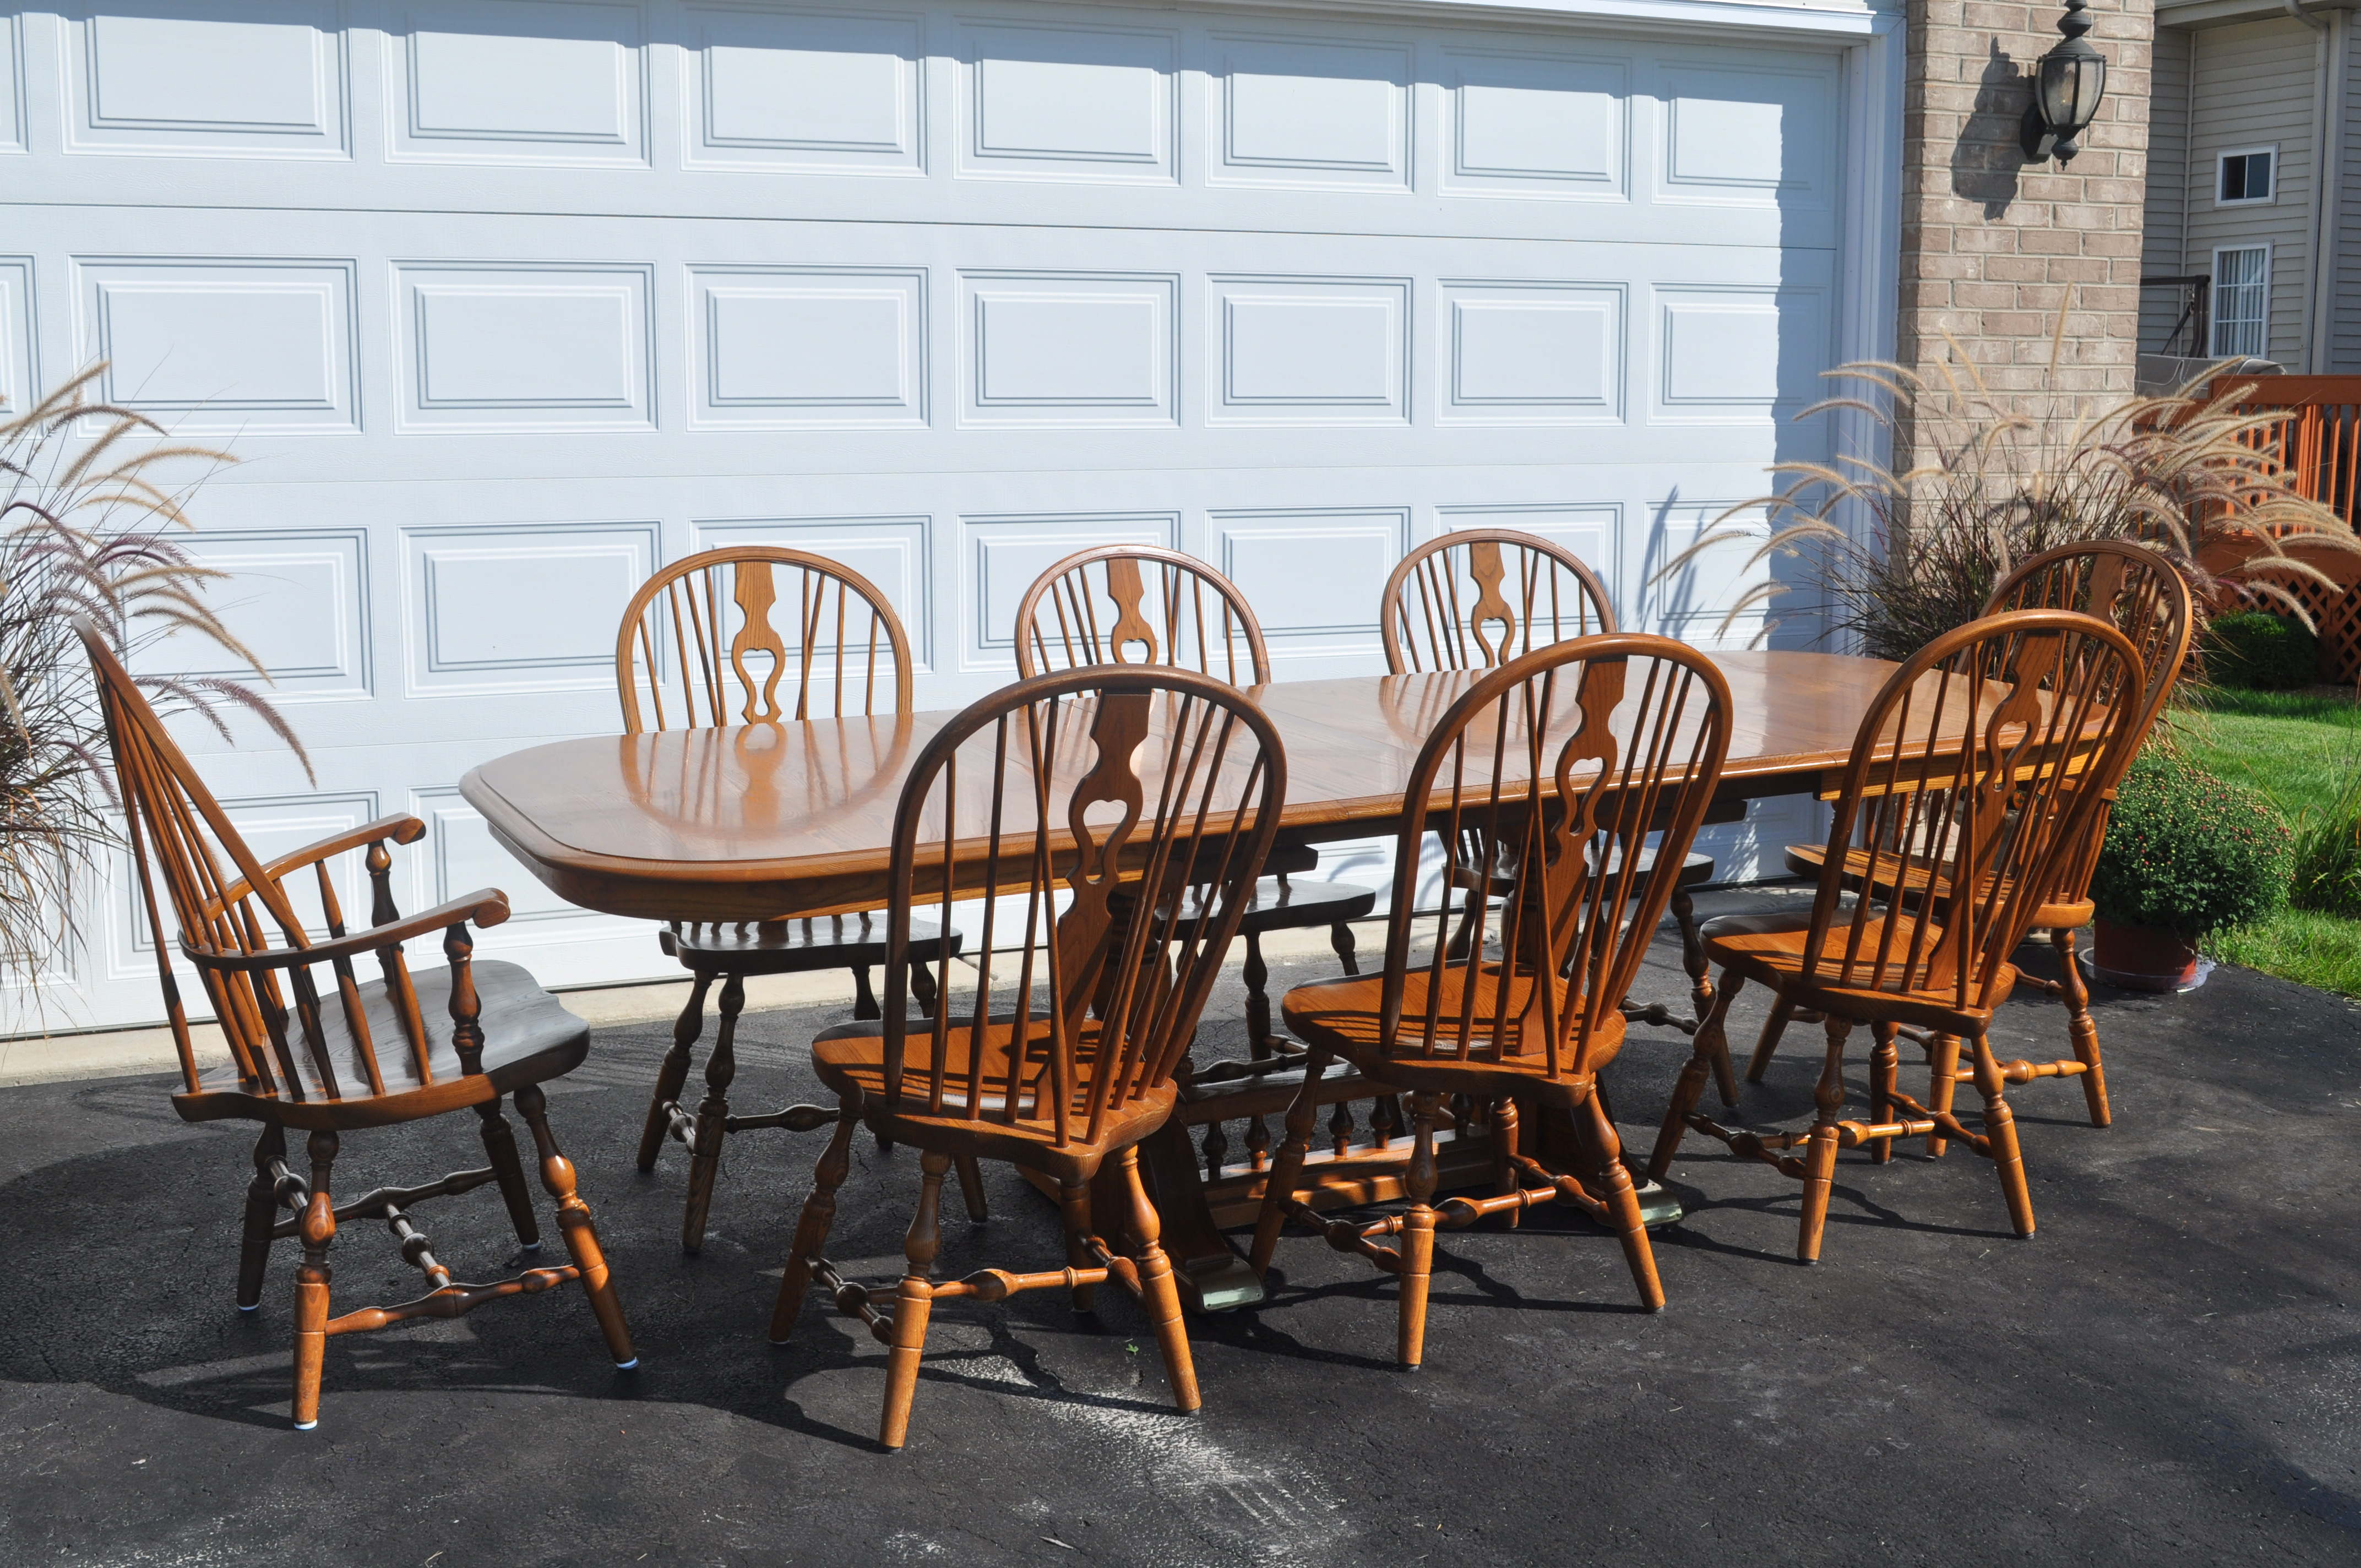 Superb S. Bent Brothers 9 Piece Maple Dining Set.